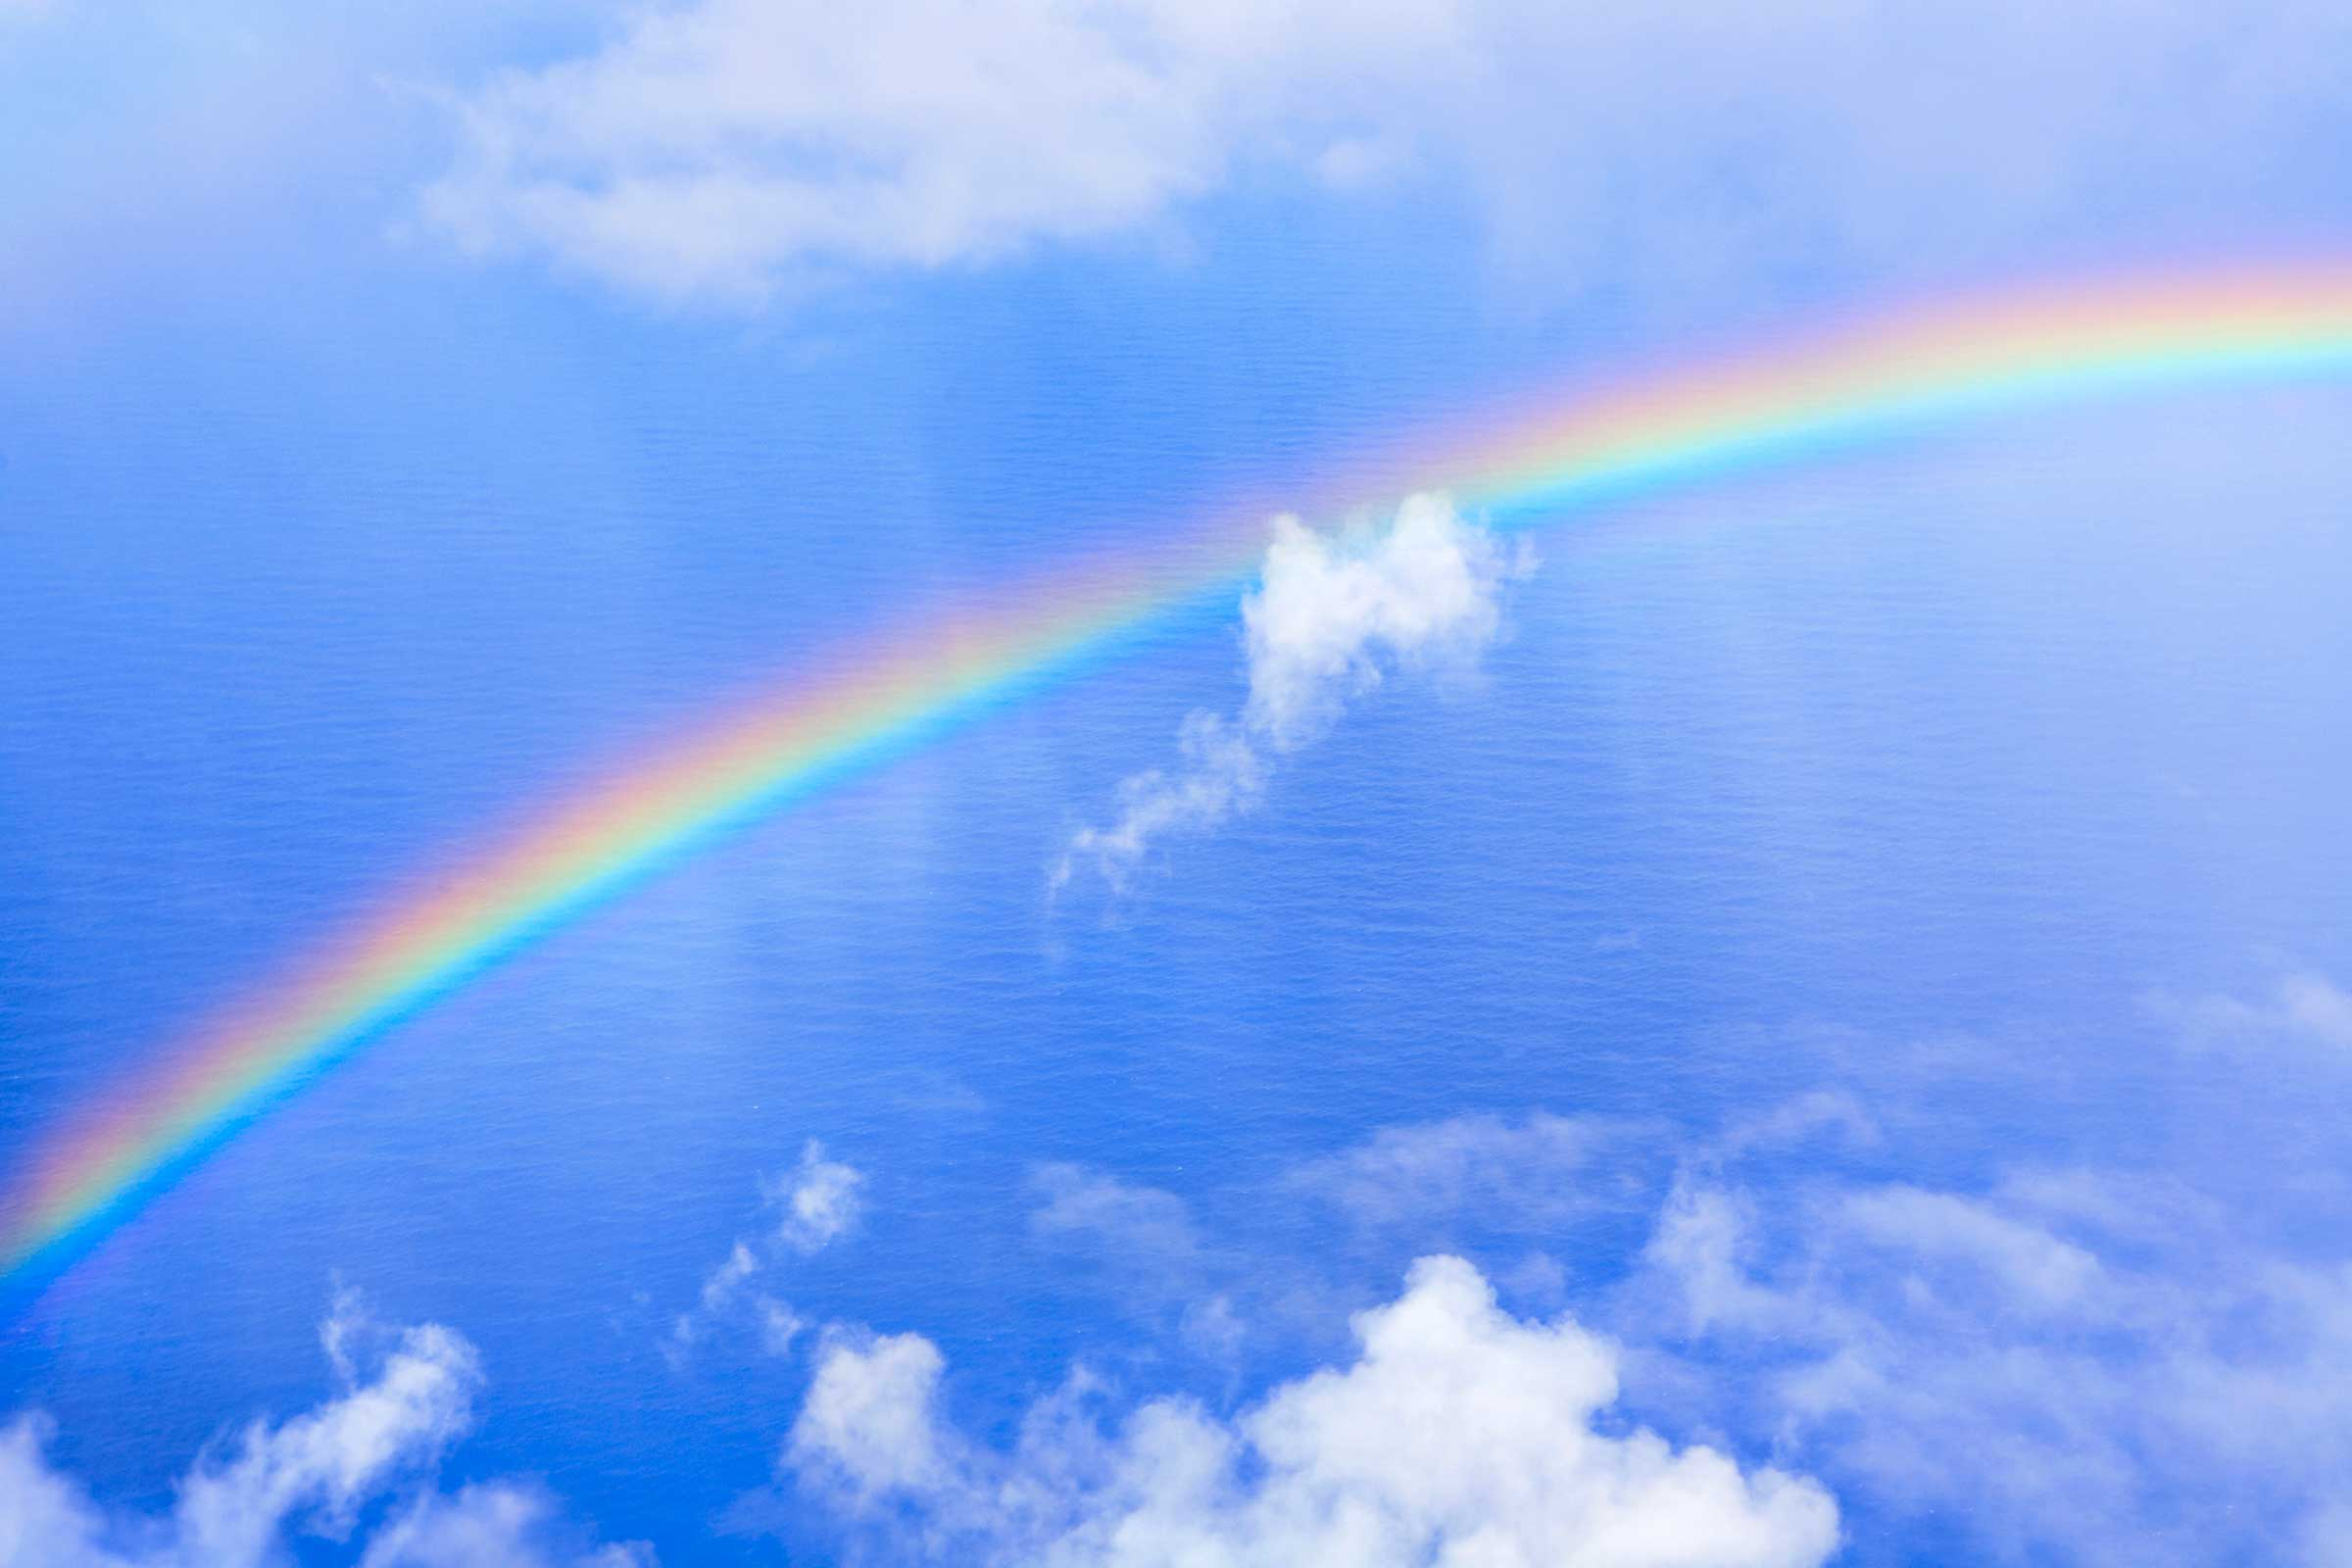 rainbow pictures free download